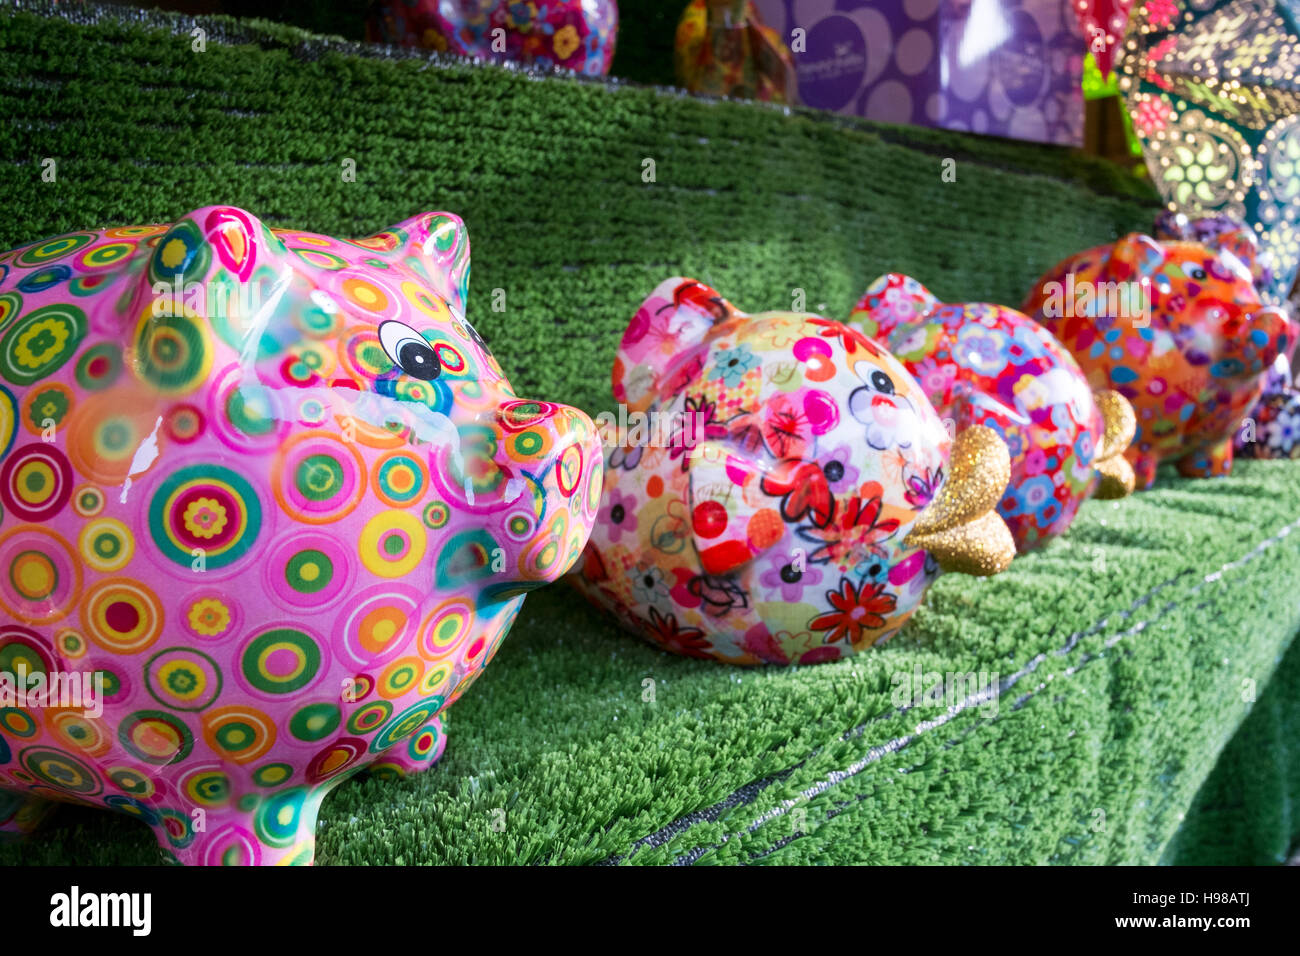 Banks For Sale >> Hand Painted Piggy Banks For Sale On A Christmas Market